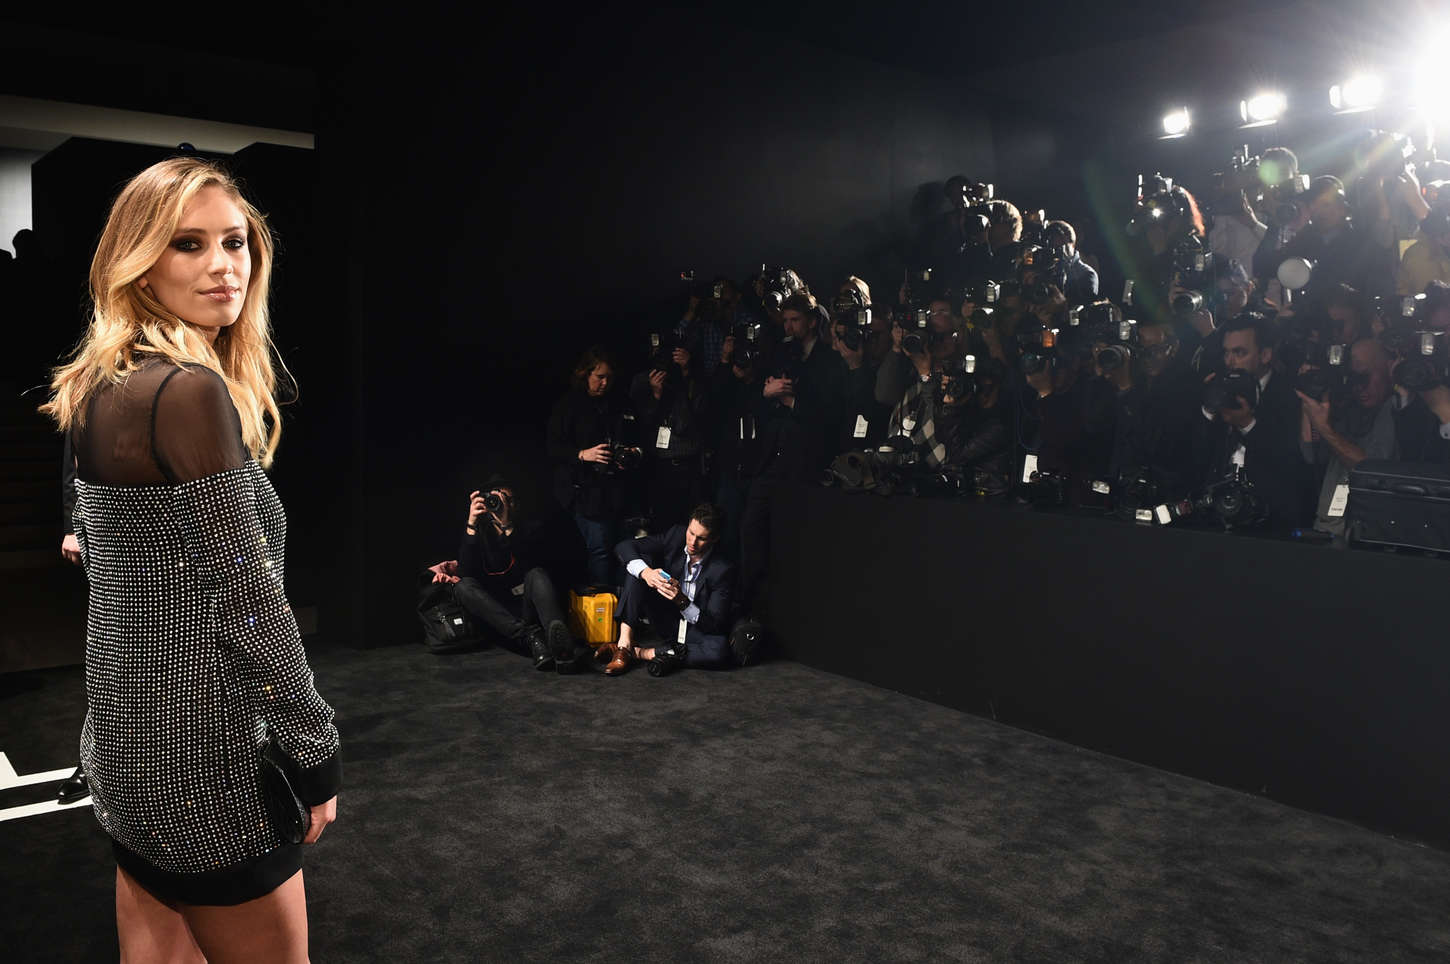 Dylan Penn Tom Ford A/W Womenswear Collection Presentation in Los Angeles